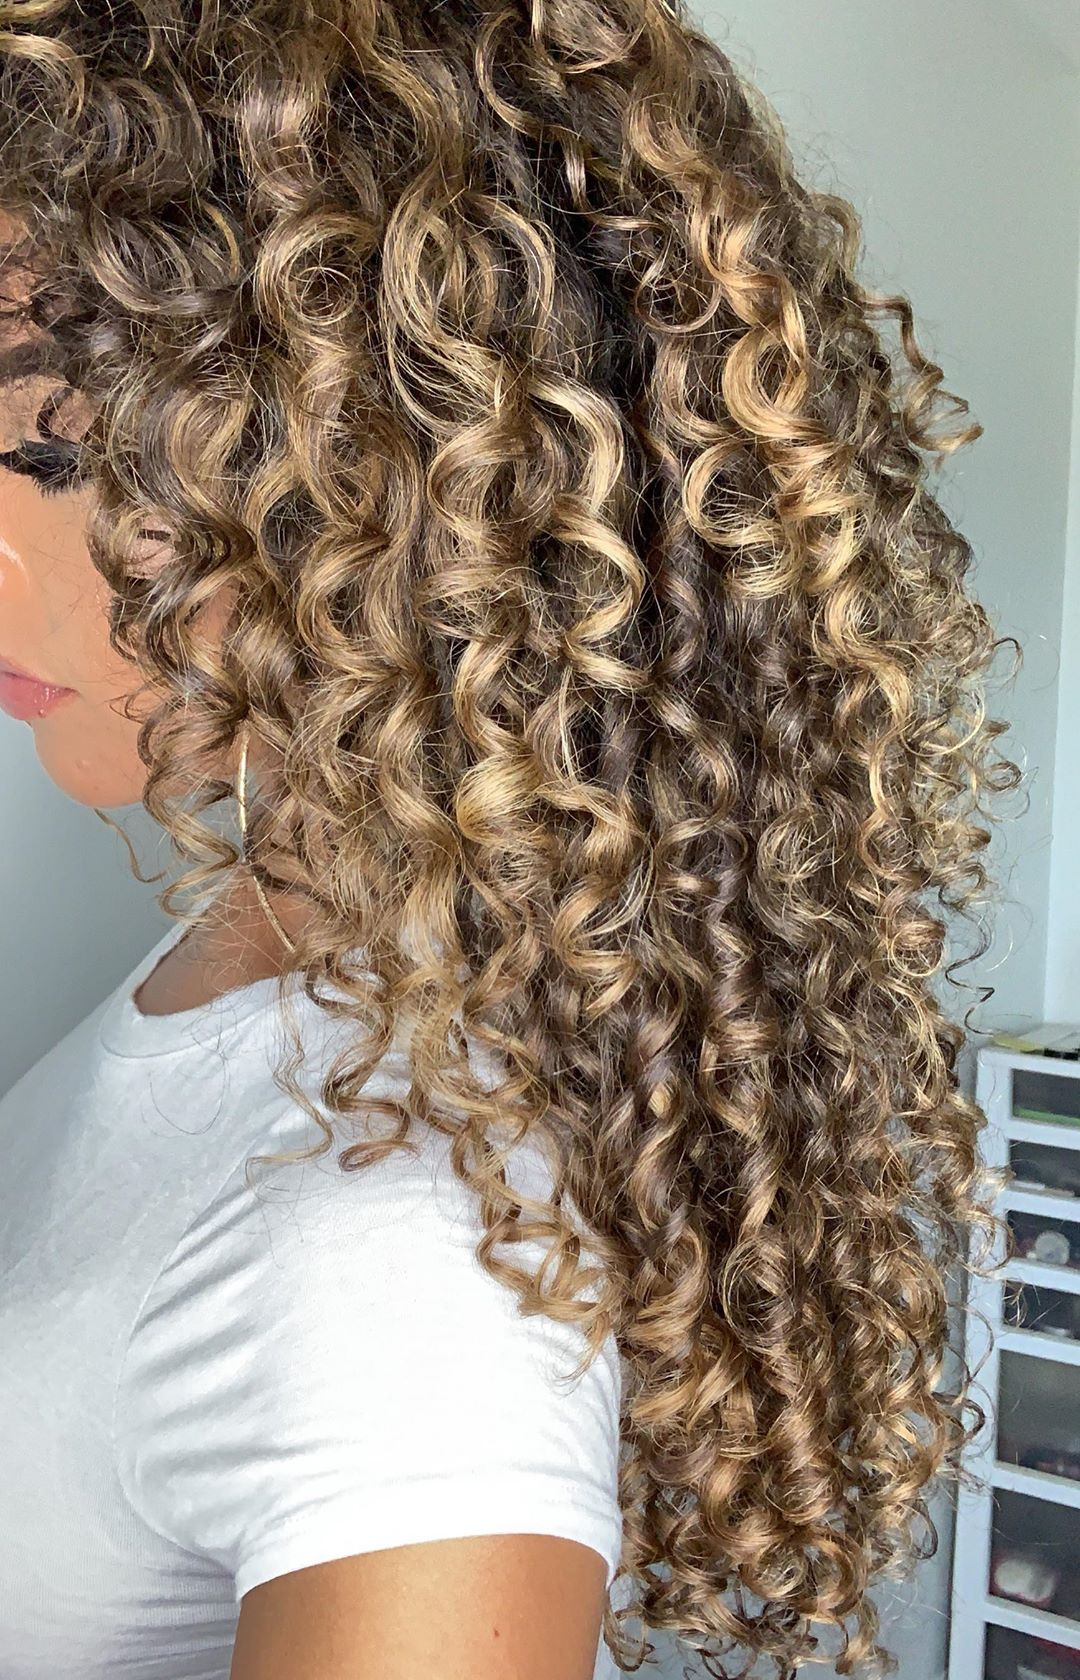 Felicia Healthy Hair Hif3licia On Instagram Train Your Curls While Deep Conditioning And Wet Plopping For Beautiful Boun Bouncy Curls Hair Healthy Hair